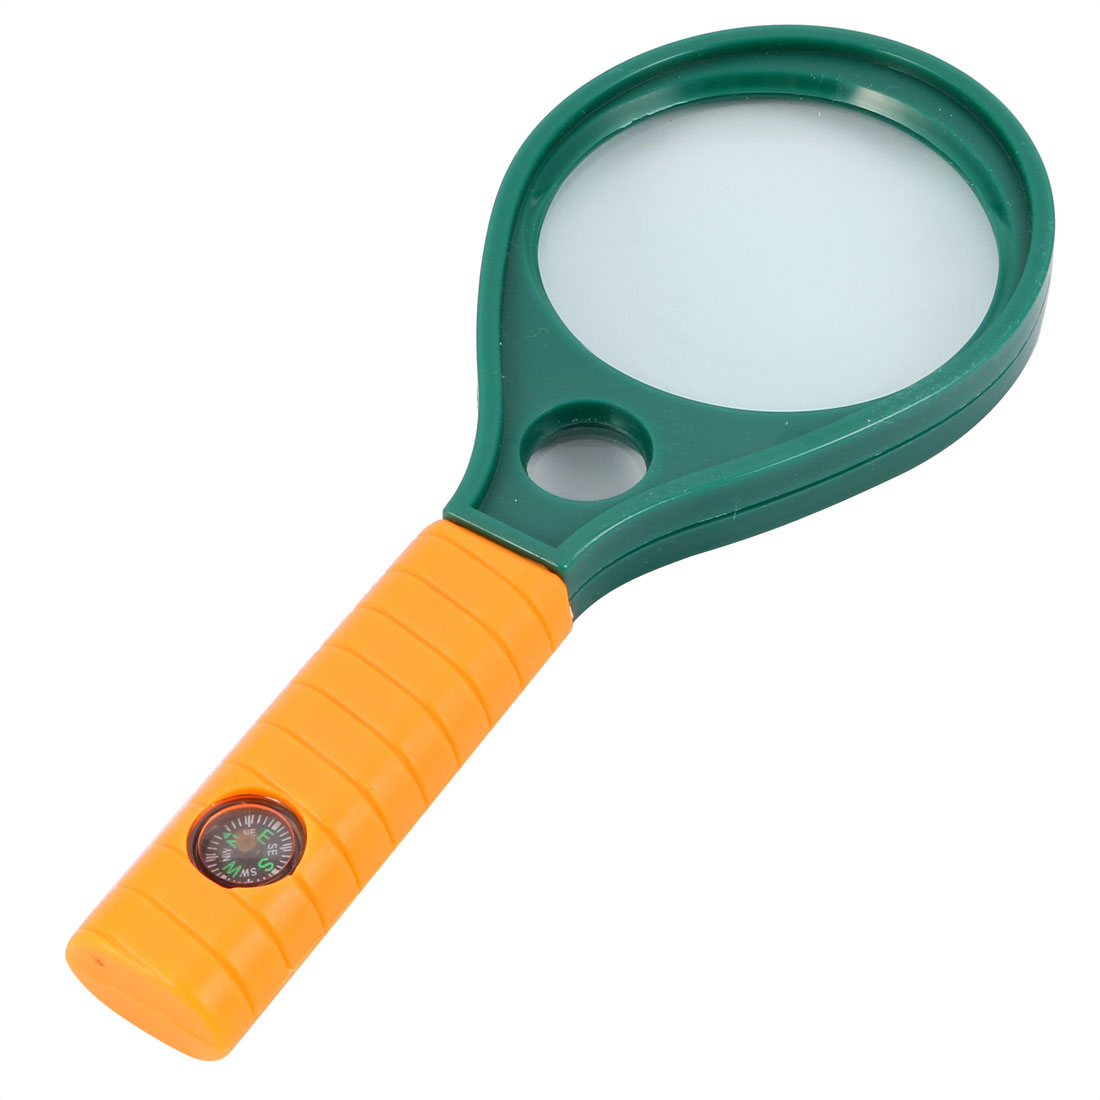 Handheld Magnifying Glass Reading Book Illuminated Magnifier 3X 8X w Compass